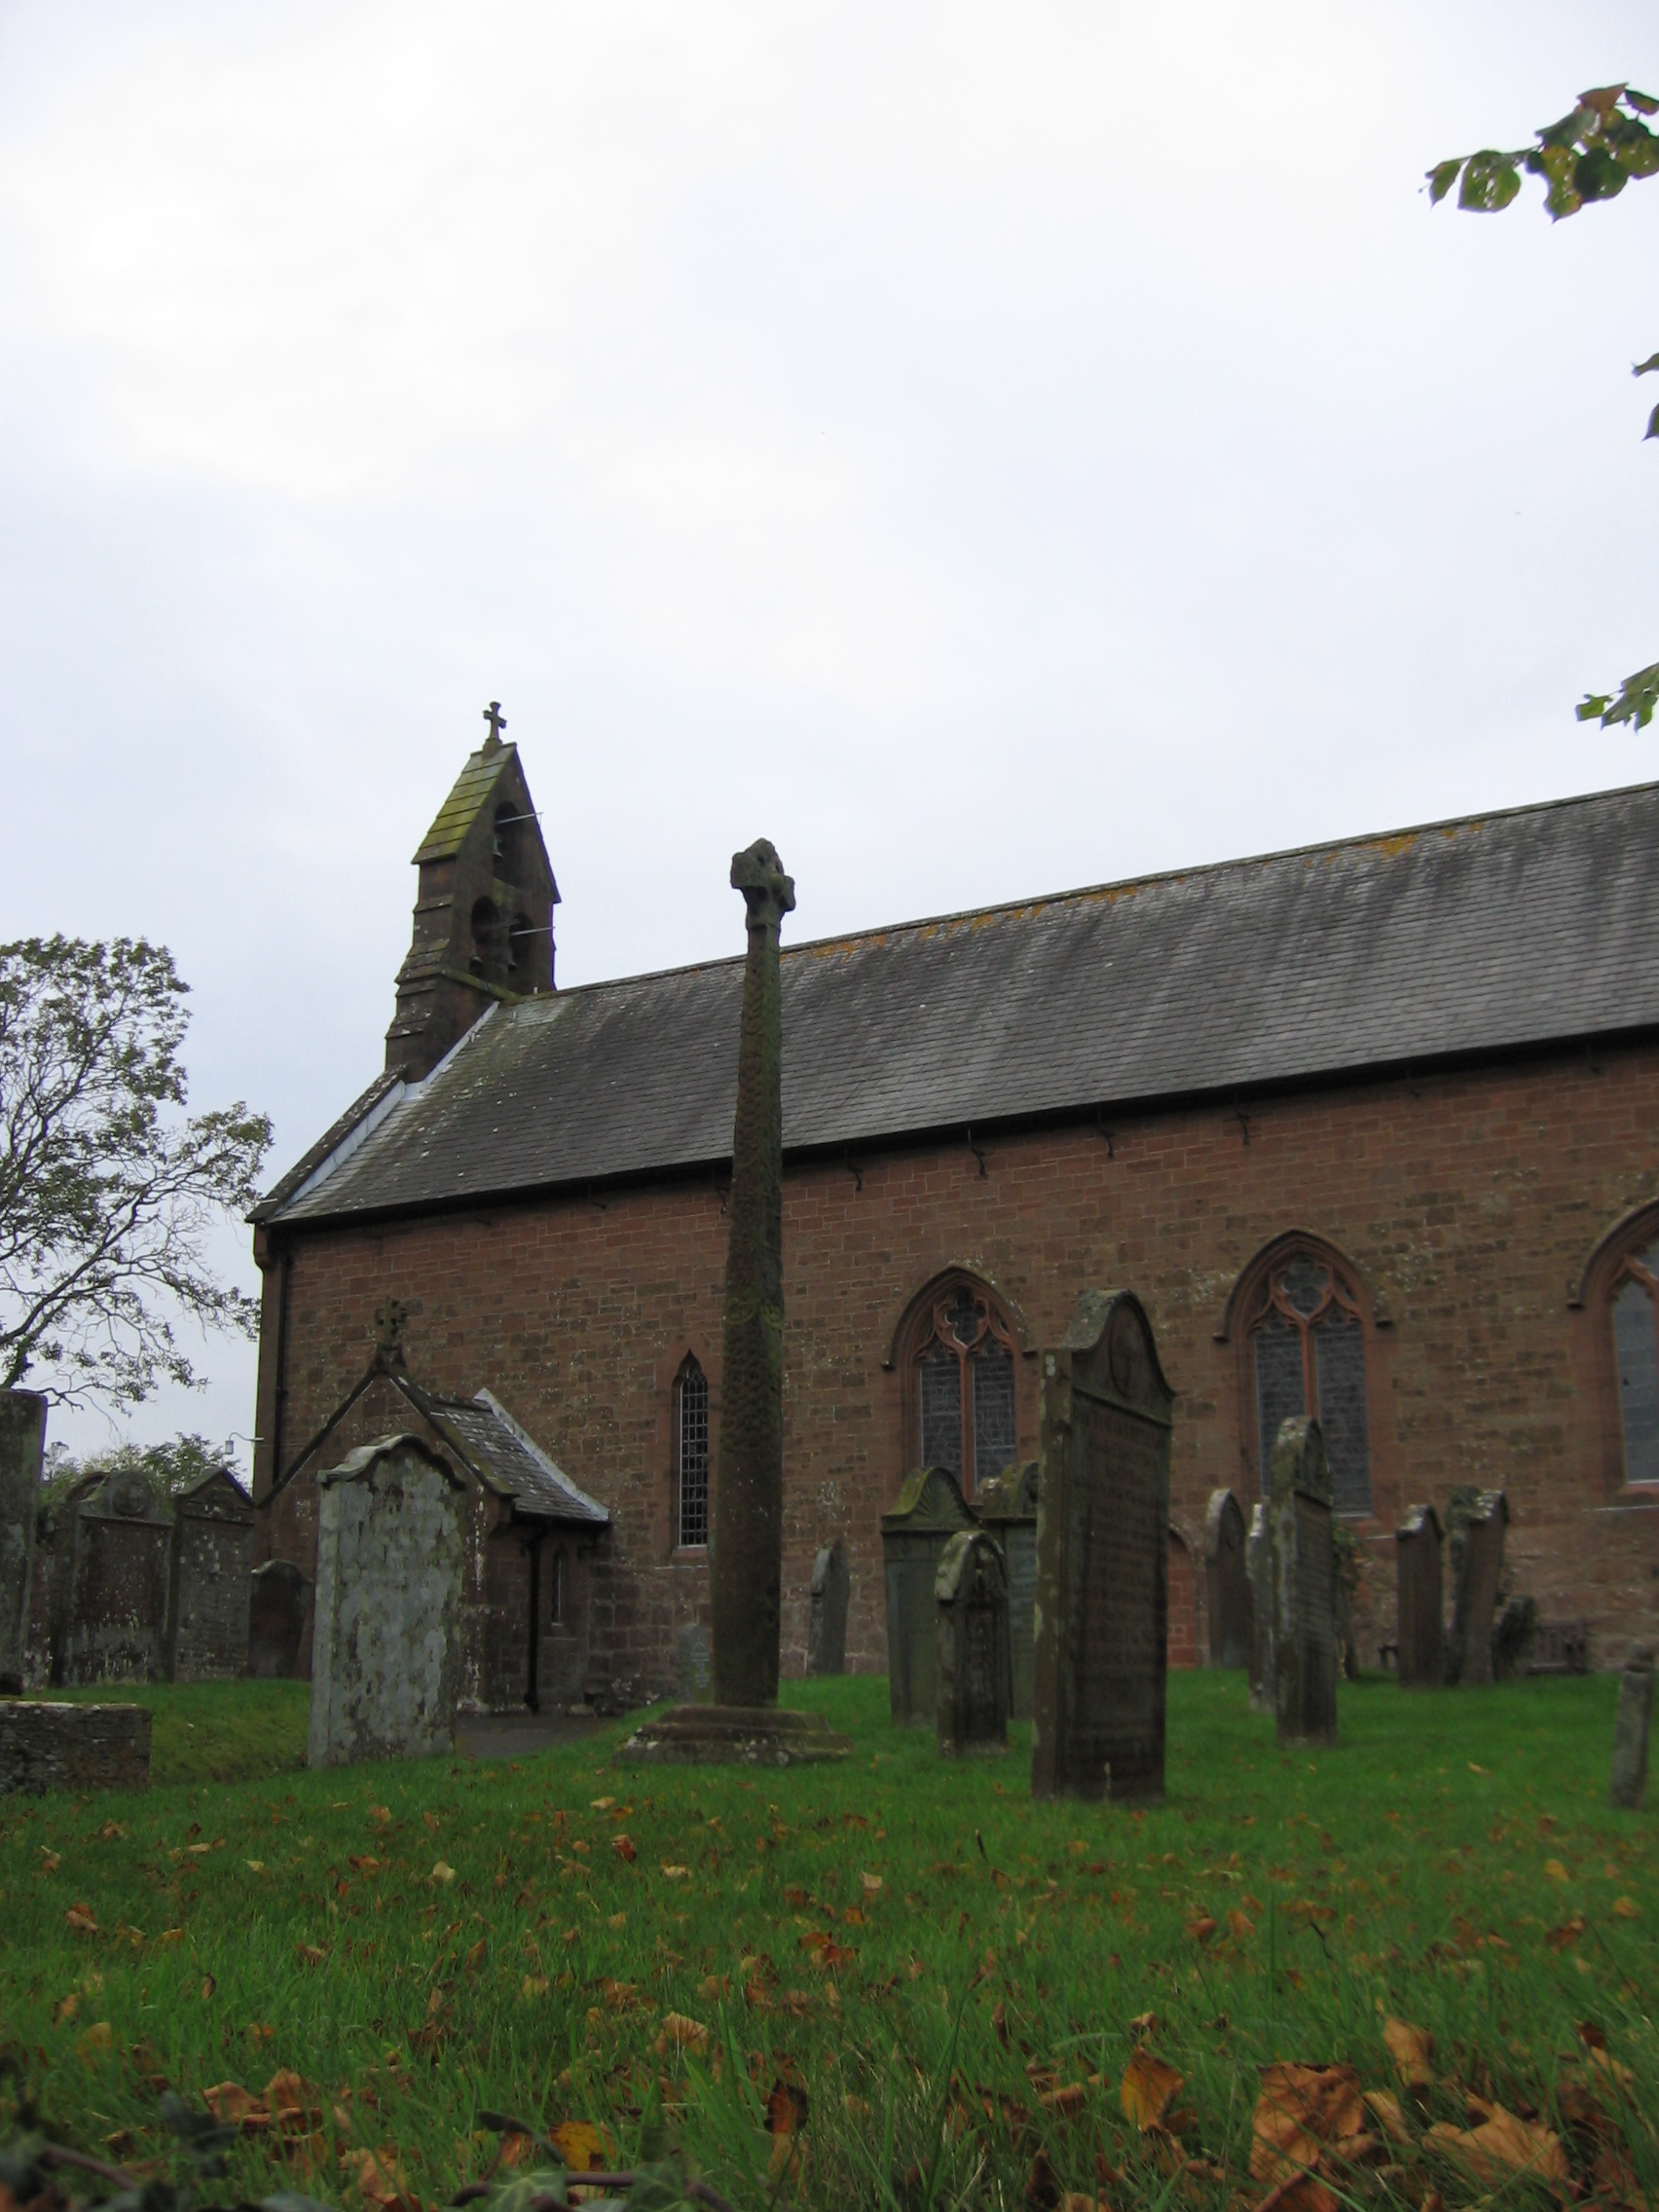 St. Mary's church in Gosforth